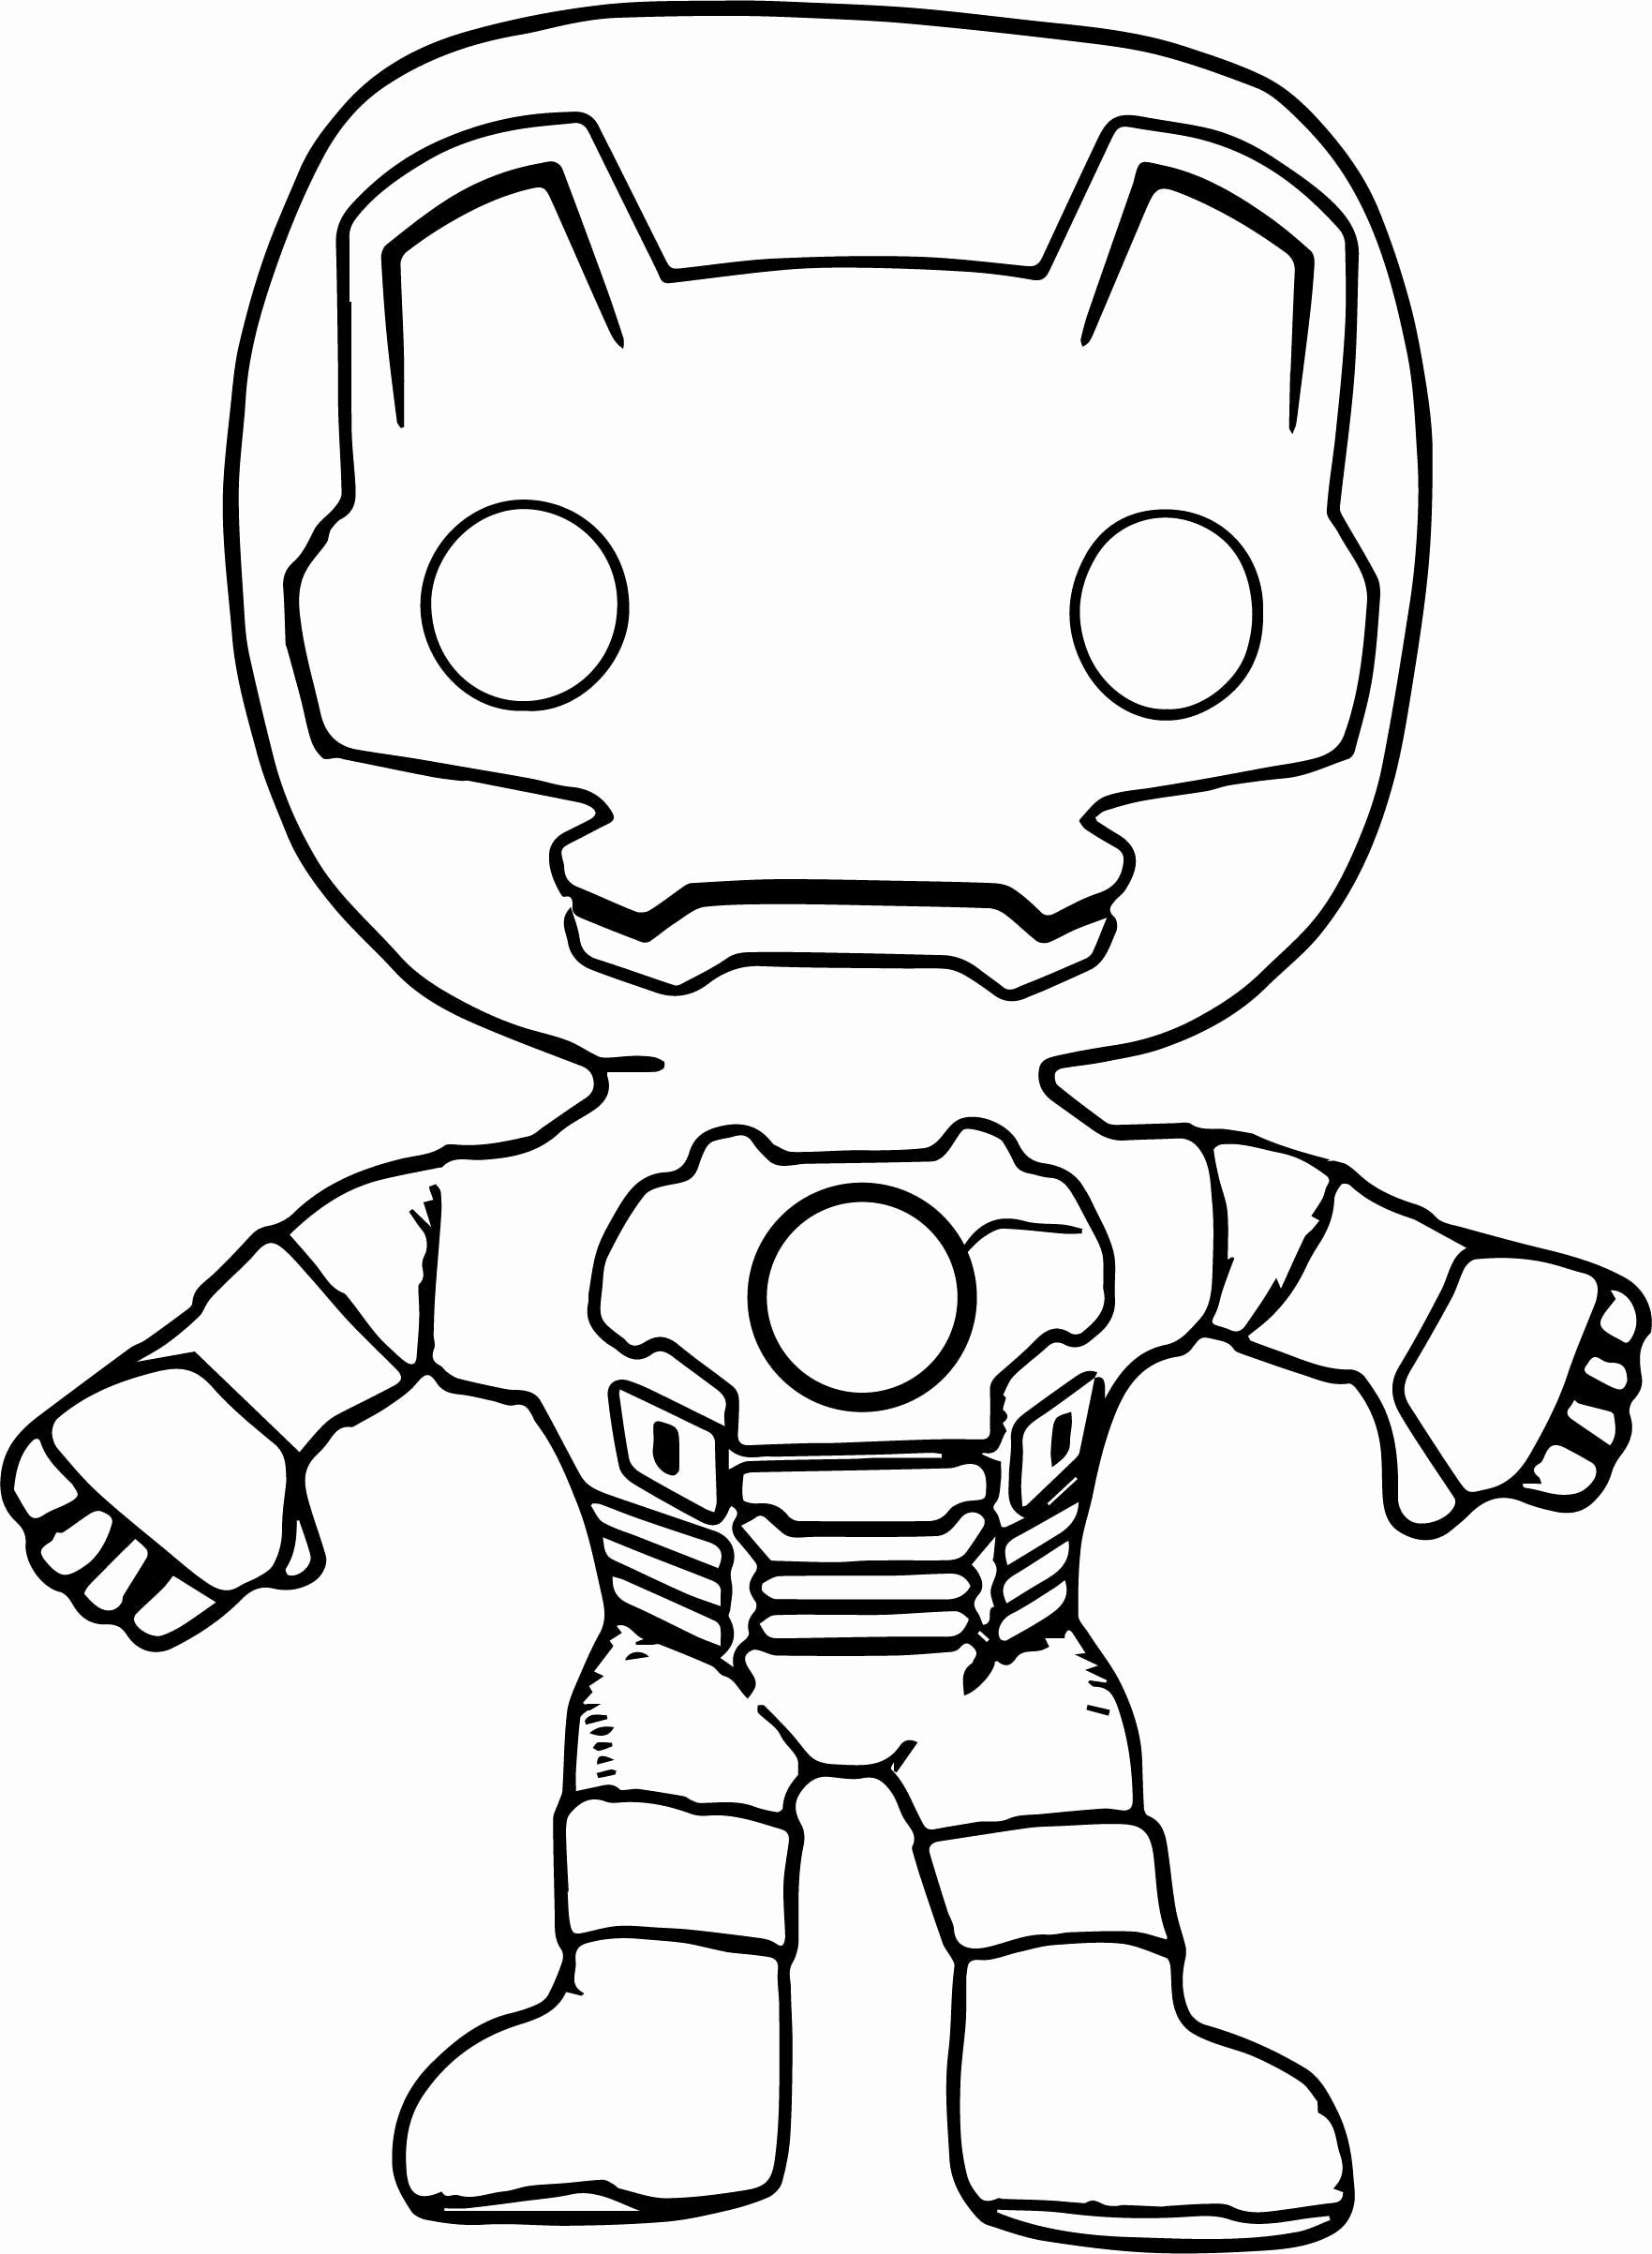 Kids Coloring Pages Avengers in 2020 | Chibi coloring ...